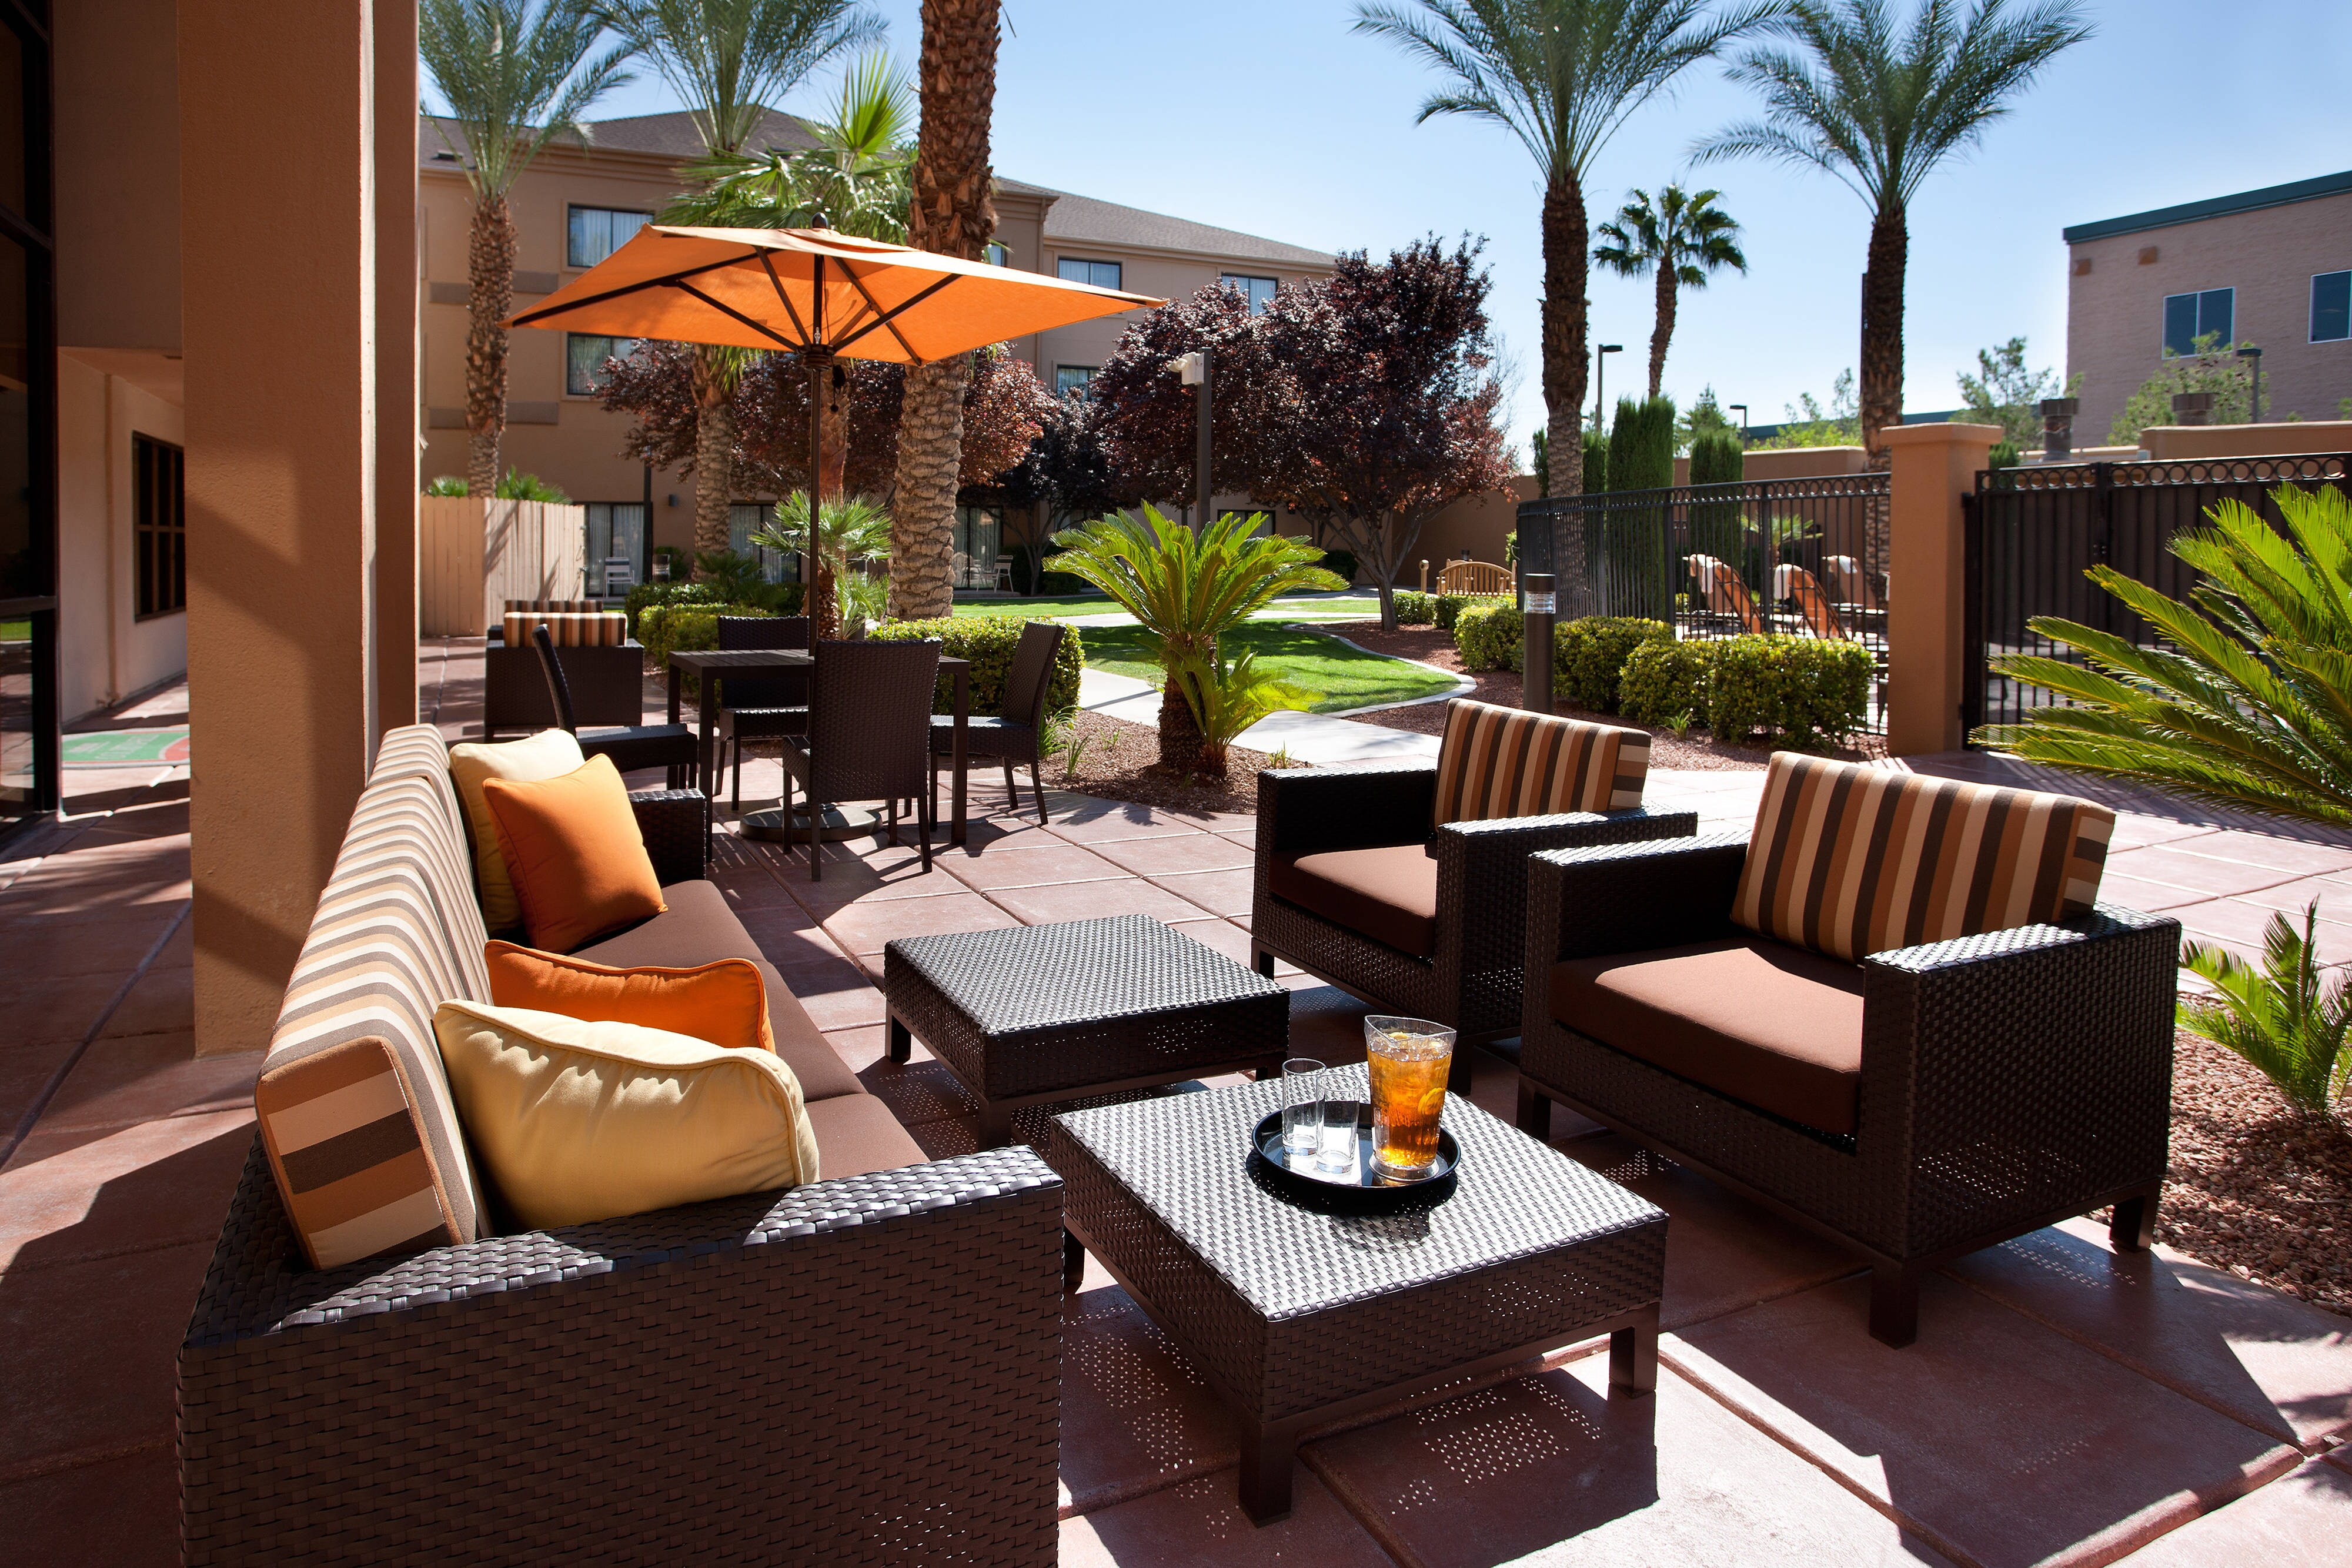 Las Vegas Summerlin Patio